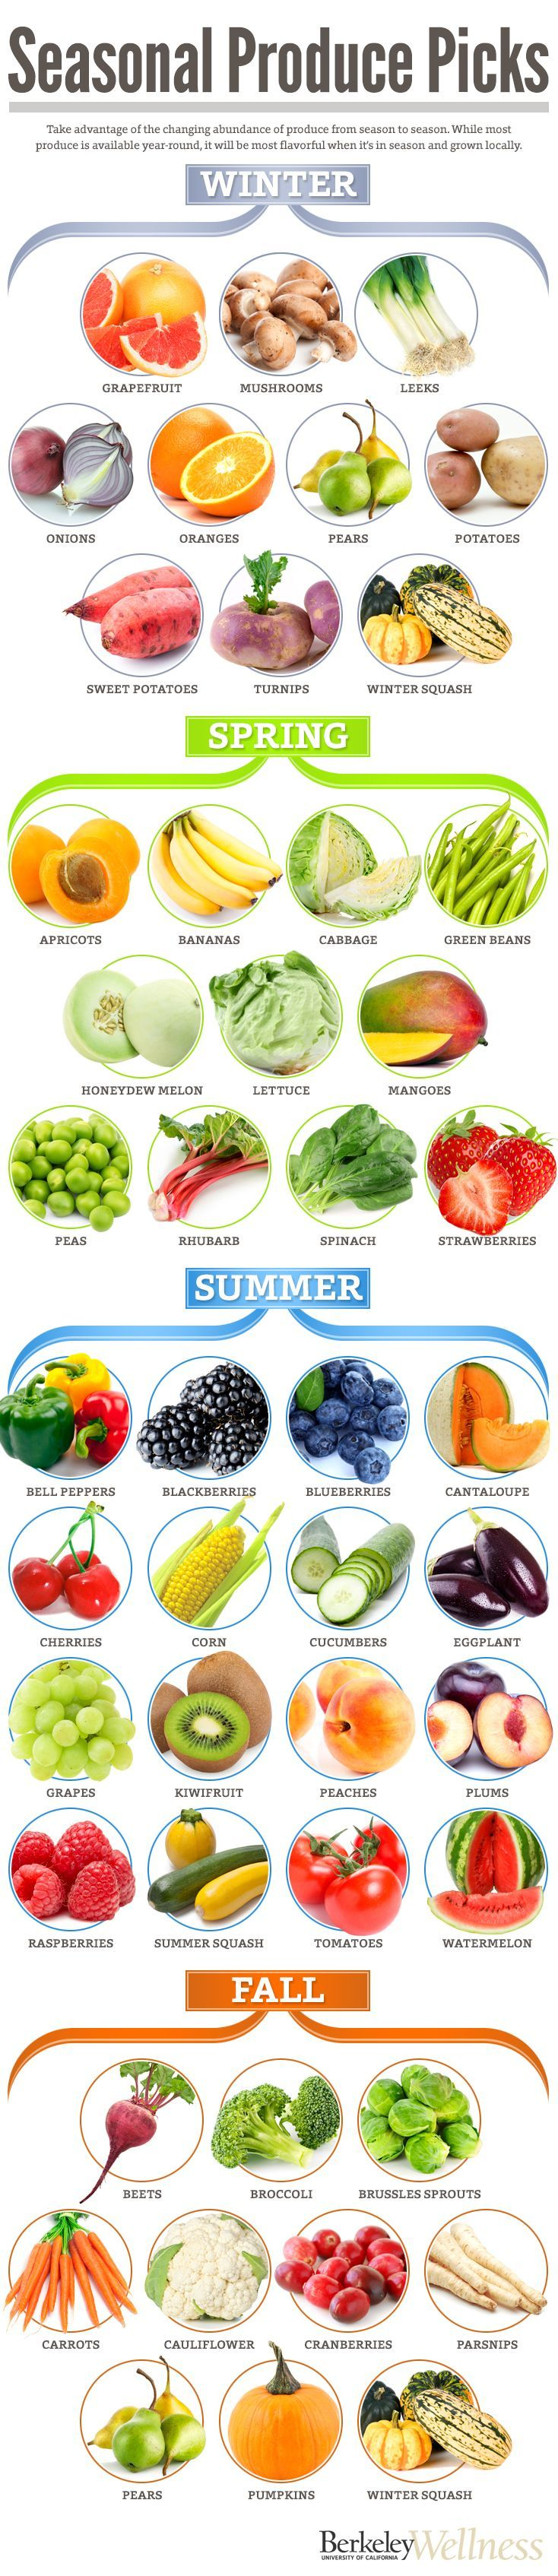 Seasonal pick! Which fruits and veggies are in season during winter, spring, summer and fall. #health #diet #healthyeating #healthydiet #fitness